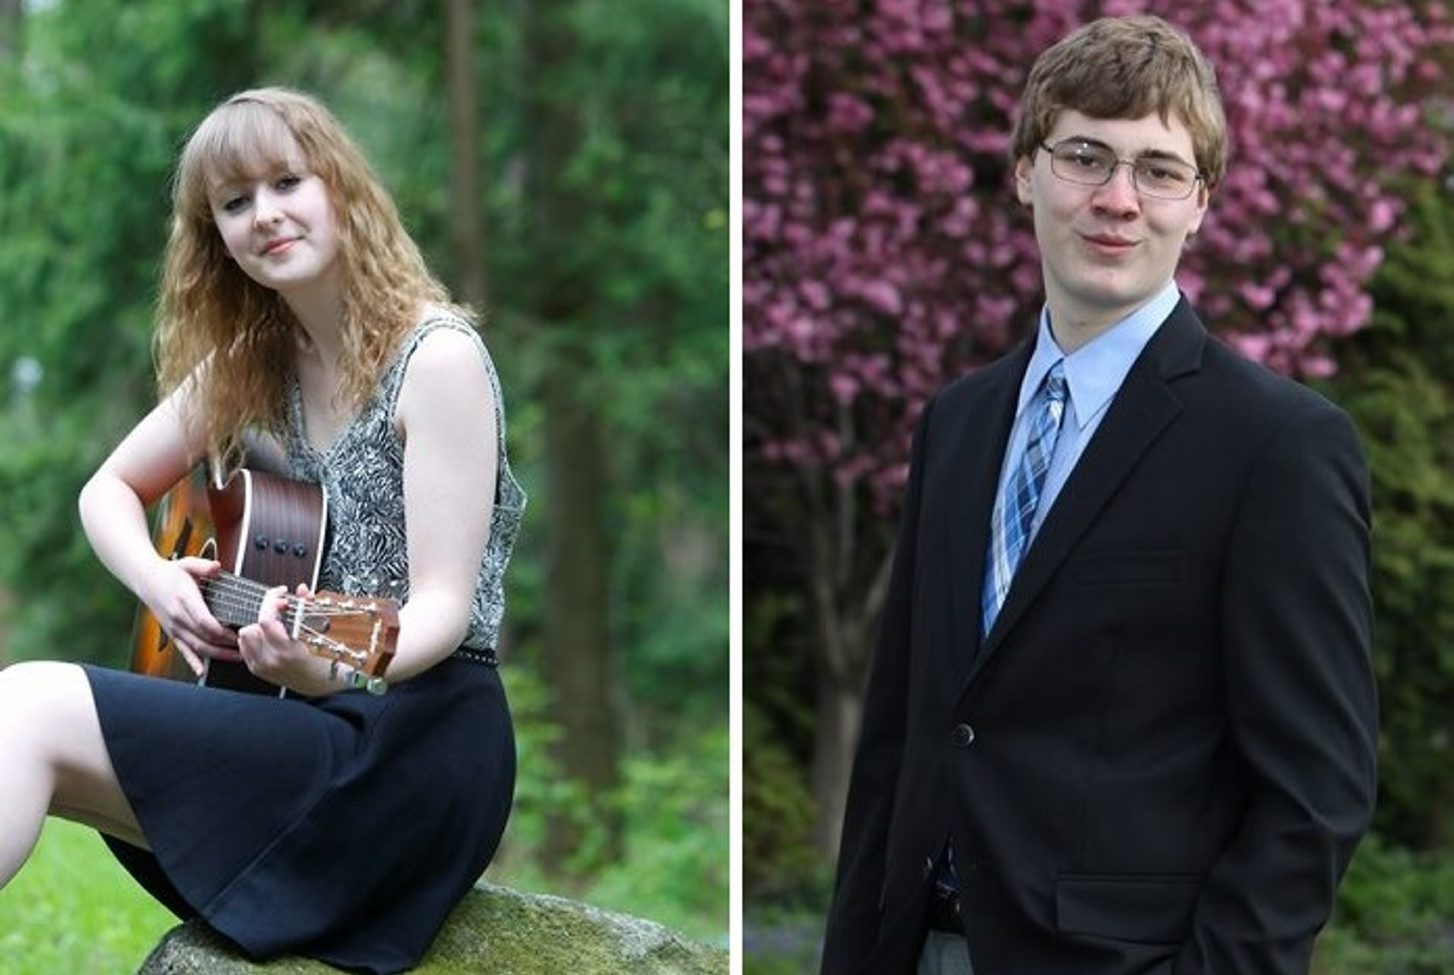 Allison Stubblebine is in the top three of her graduating class at Springville Griffith. Victor Wallum is salutatorian at Frederick Law Olmsted High School. (Photo left by John Hickey, right by Sharon Cantillon / Buffalo News)